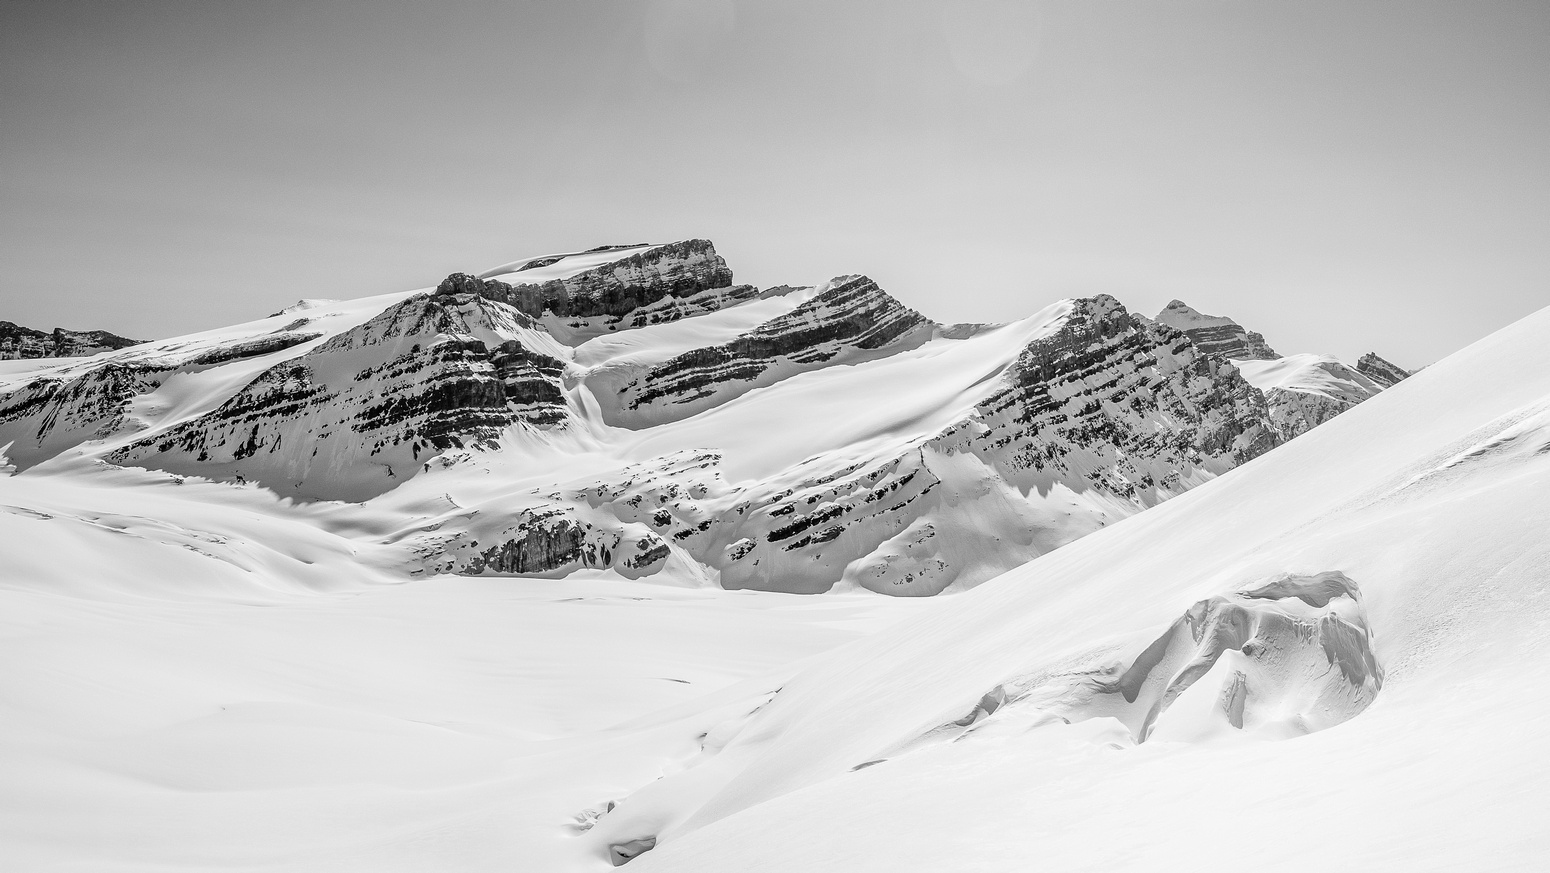 Crevasses lurk everywhere here! Mount Gordon is impressive from this angle.